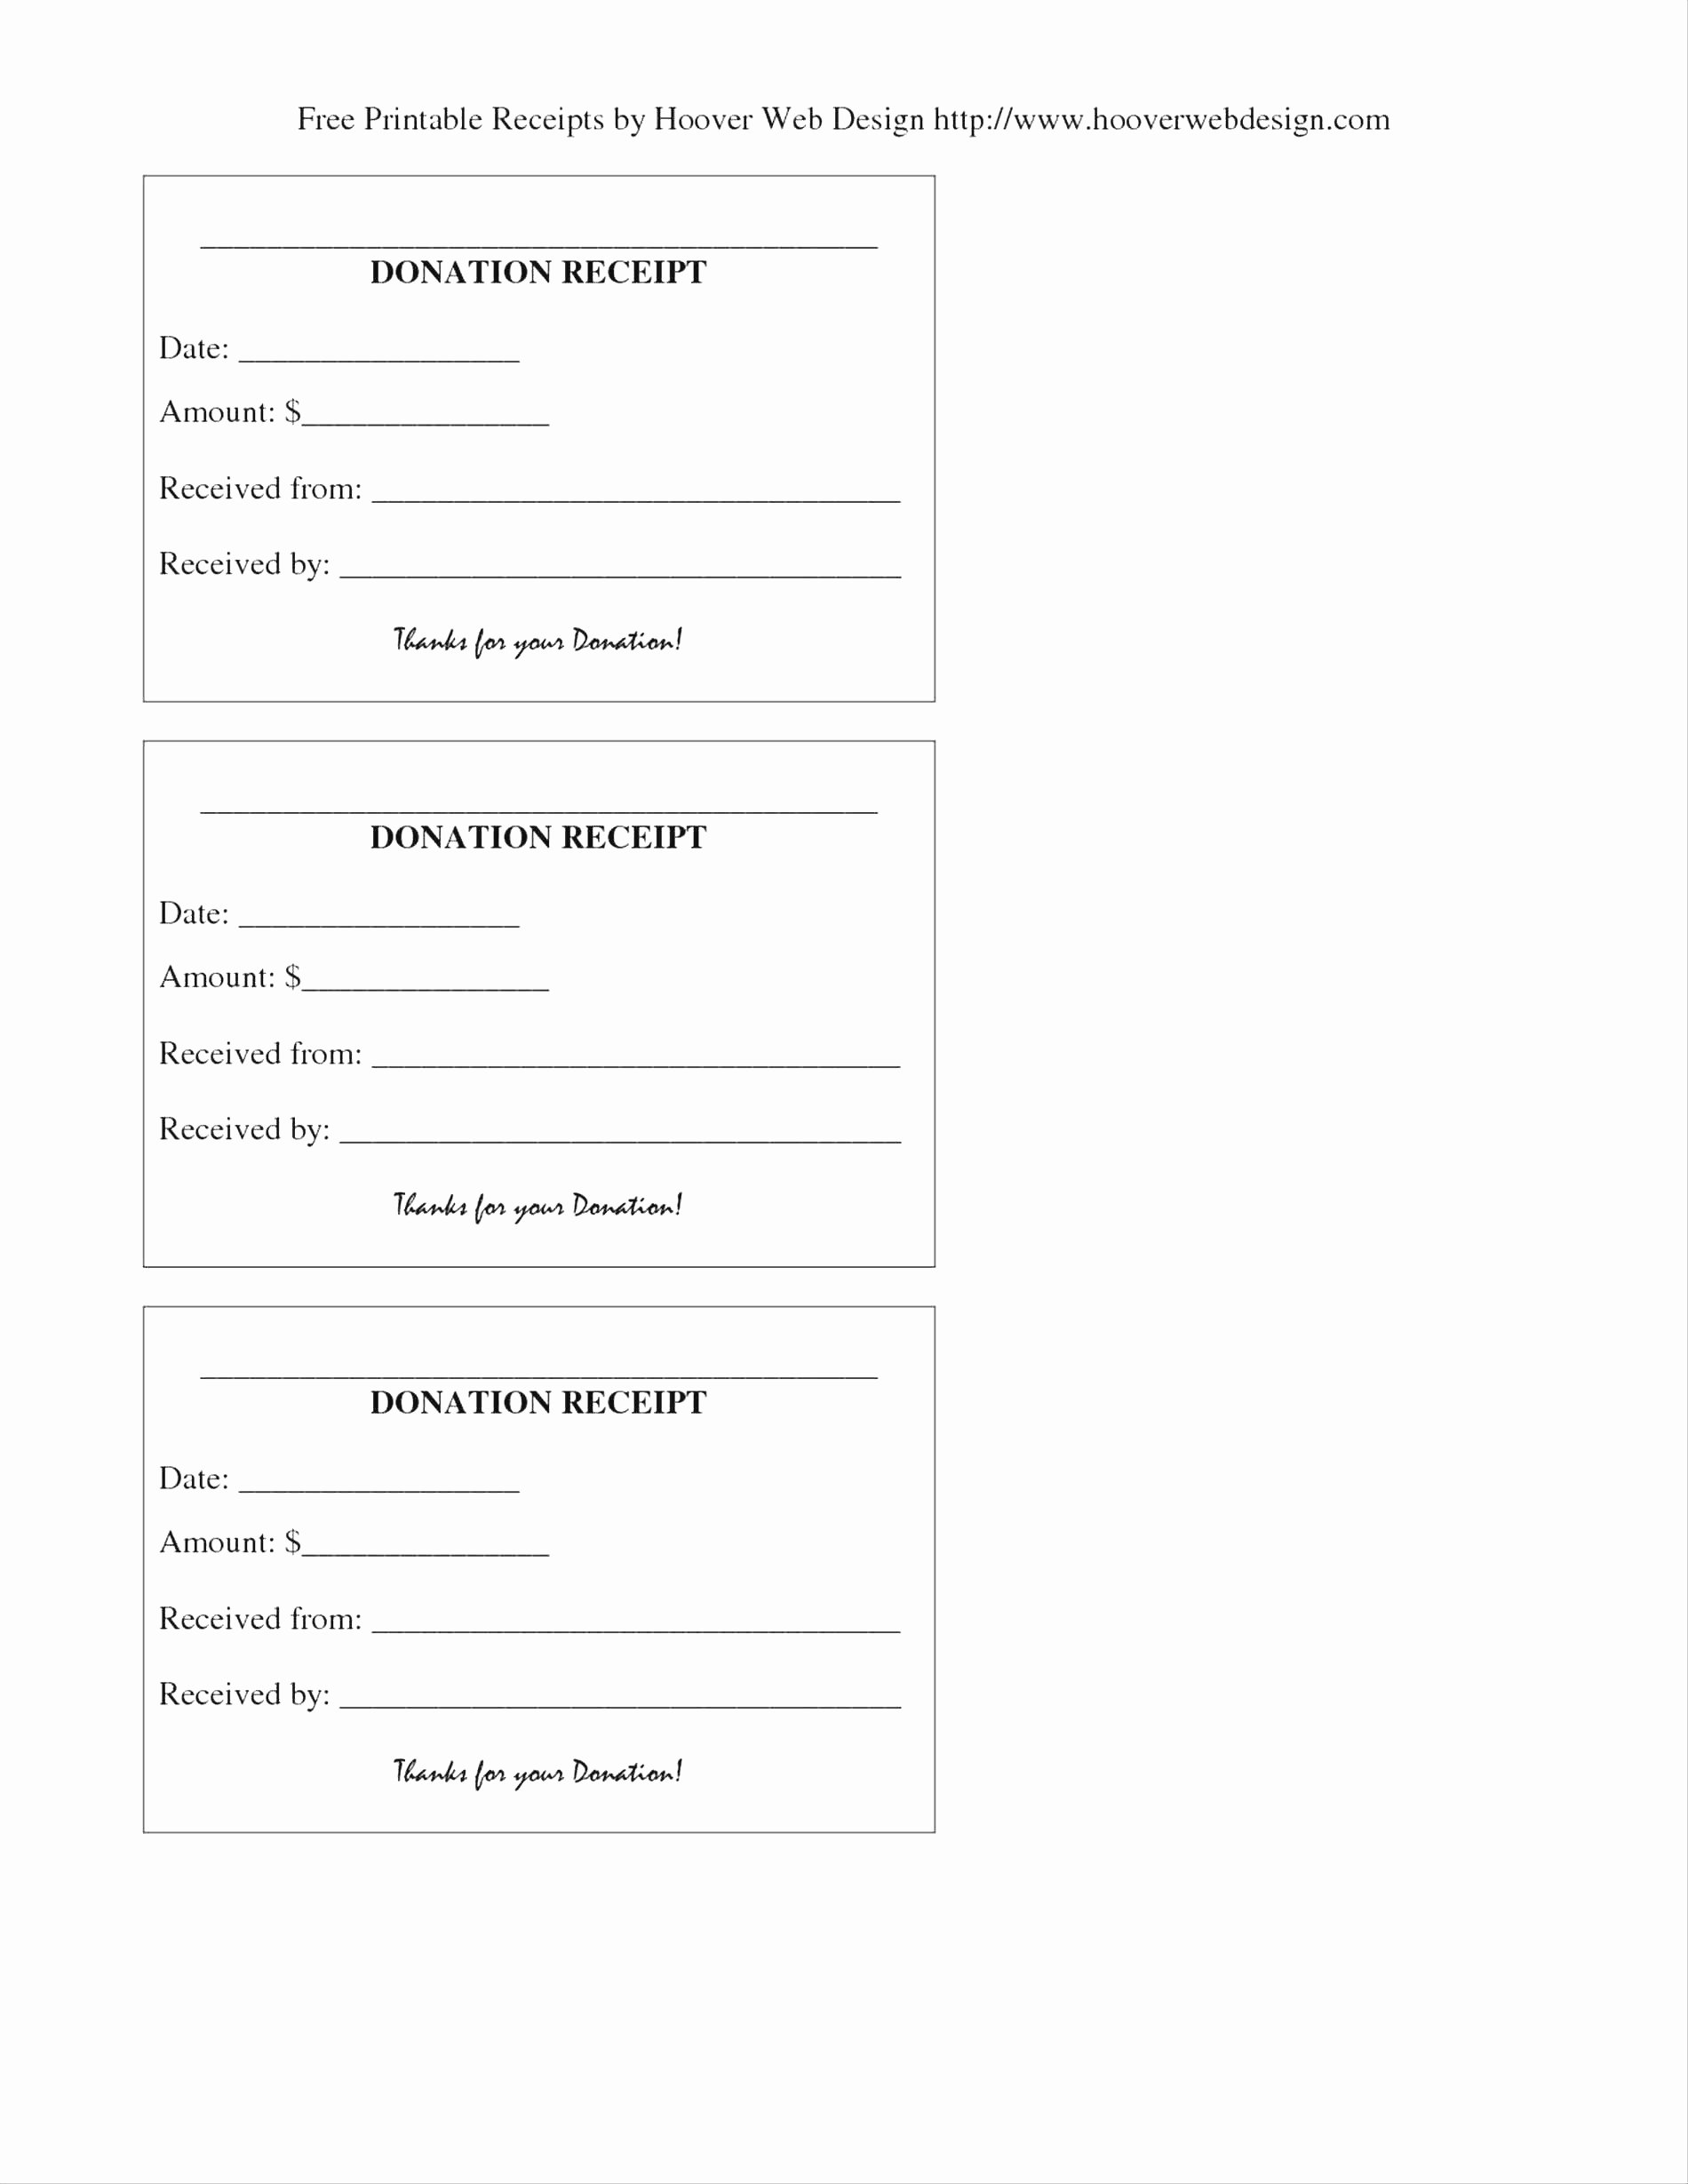 Church Donation Receipt Template Lovely Church Donation Receipt Template Filename